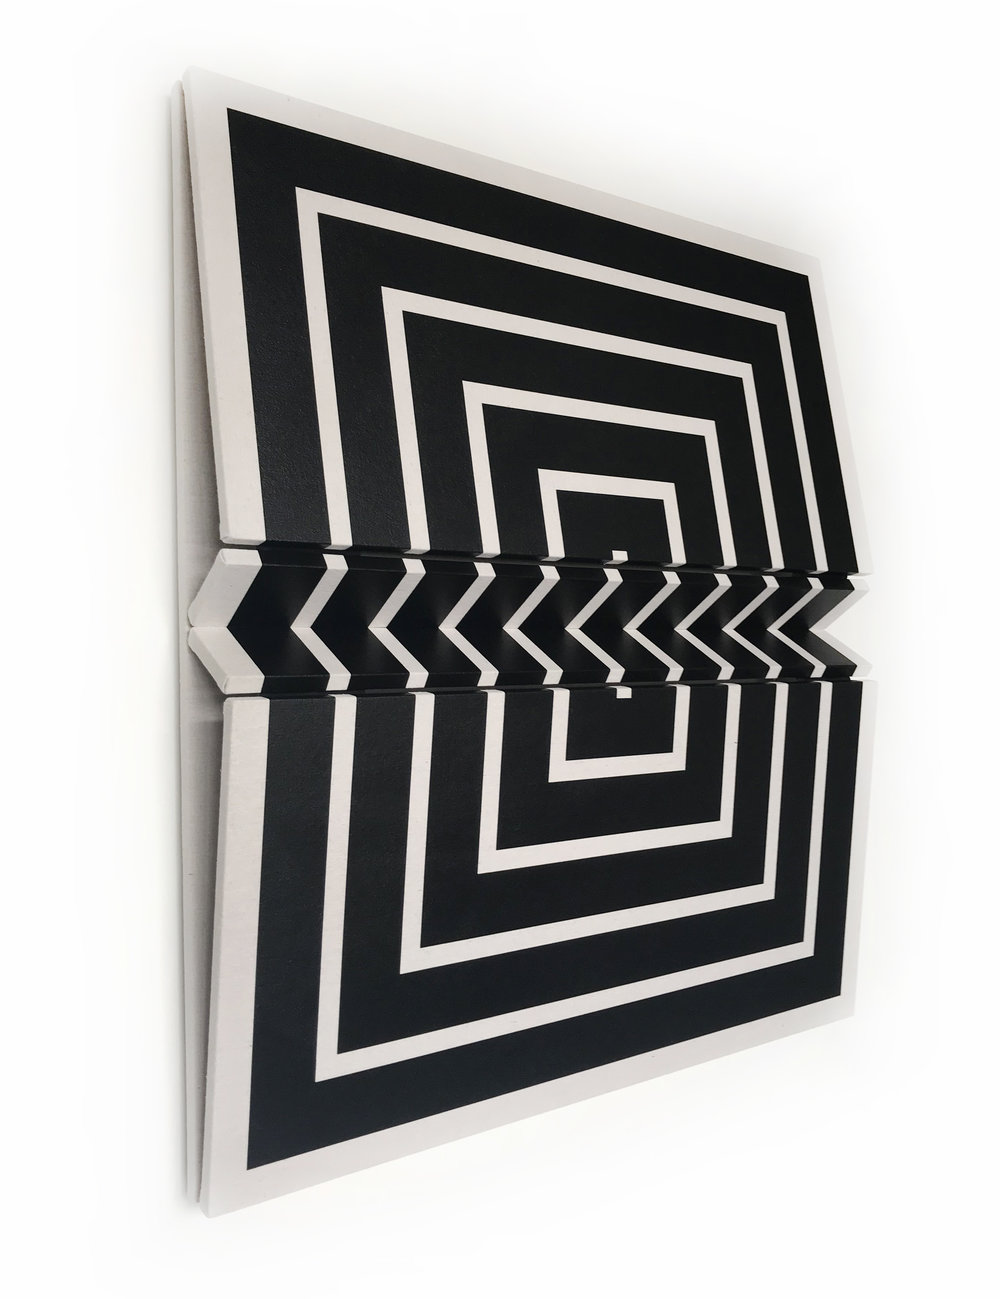 FOR WEBSITE_Untitled Black Concentric_Angle 2_2018.jpg